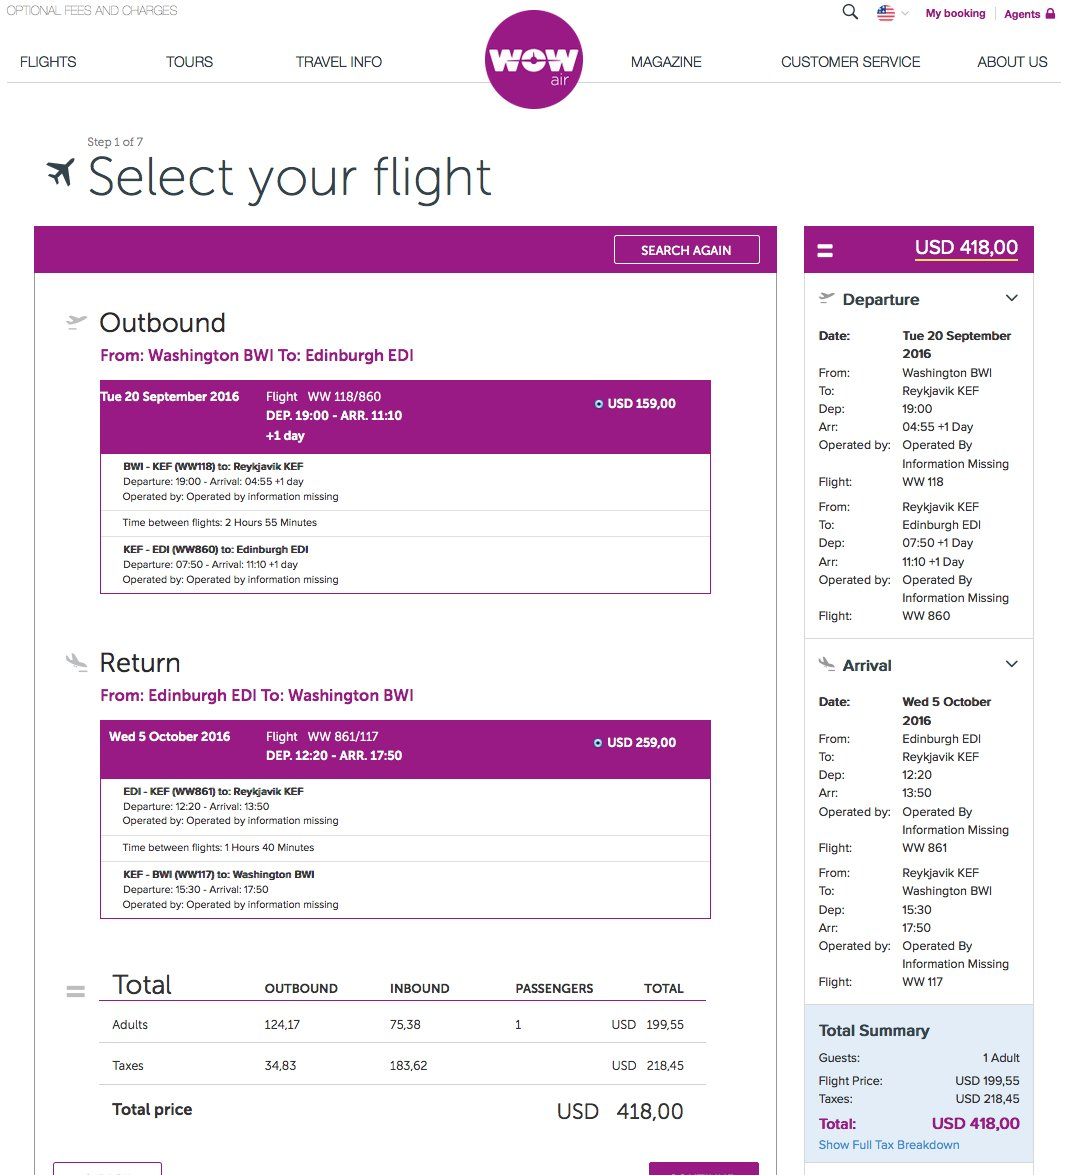 RT @airfarewatchdog: Baltimore BWI to Edinburgh EDI $418 round-trip on WOW air for Sept/Oct travel